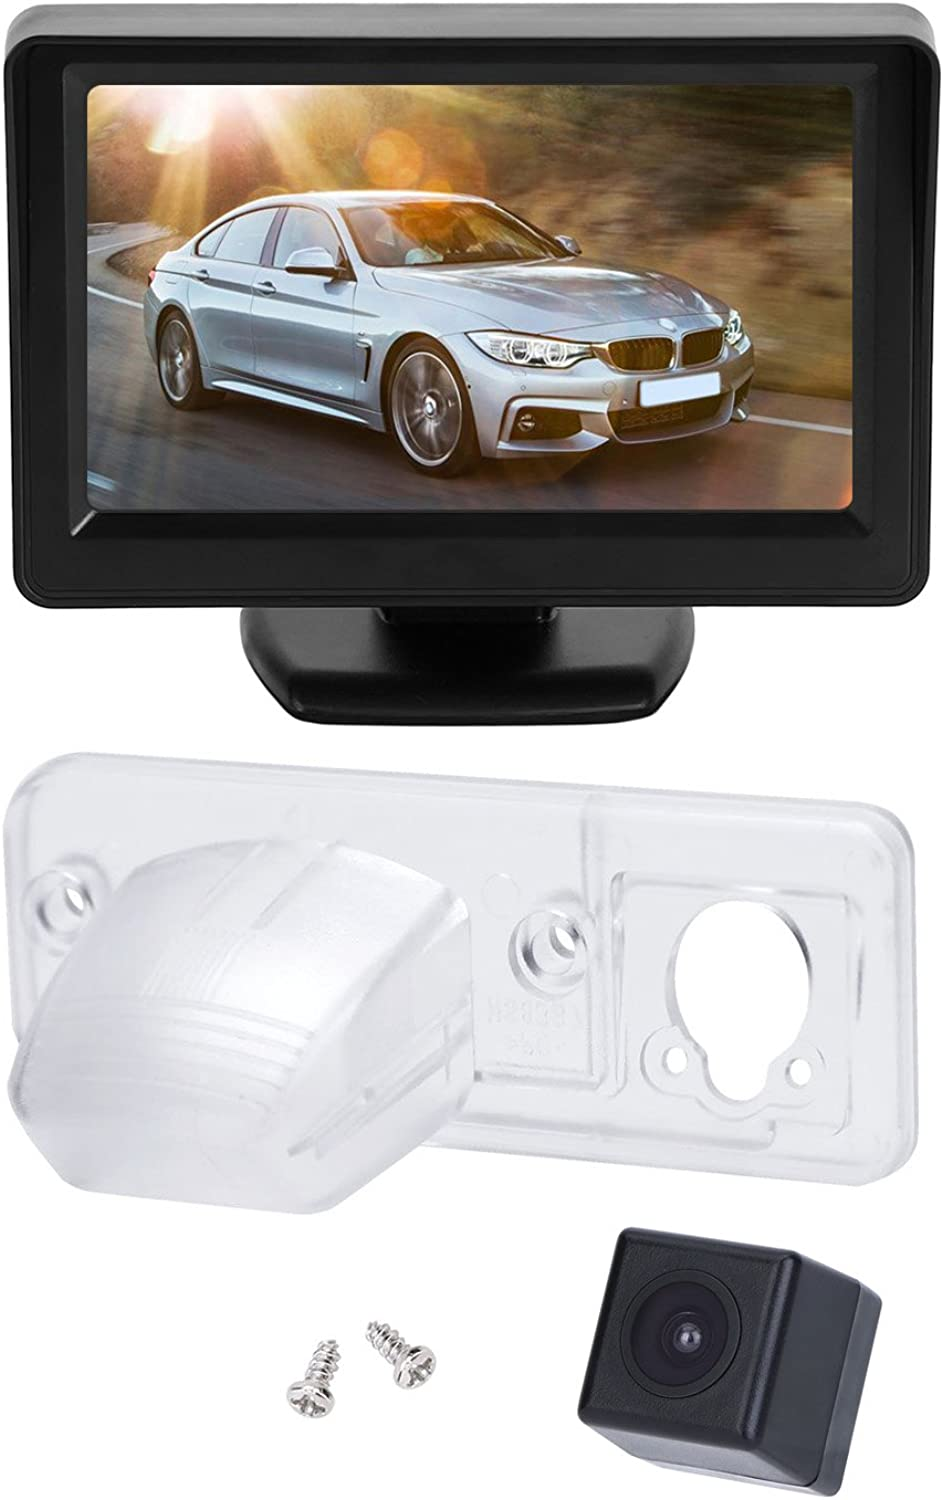 BRAUTO Reversing Camera with 4.3'' Car Monitor for VW T4 Multivan Transporter Caravelle Camper Rear View